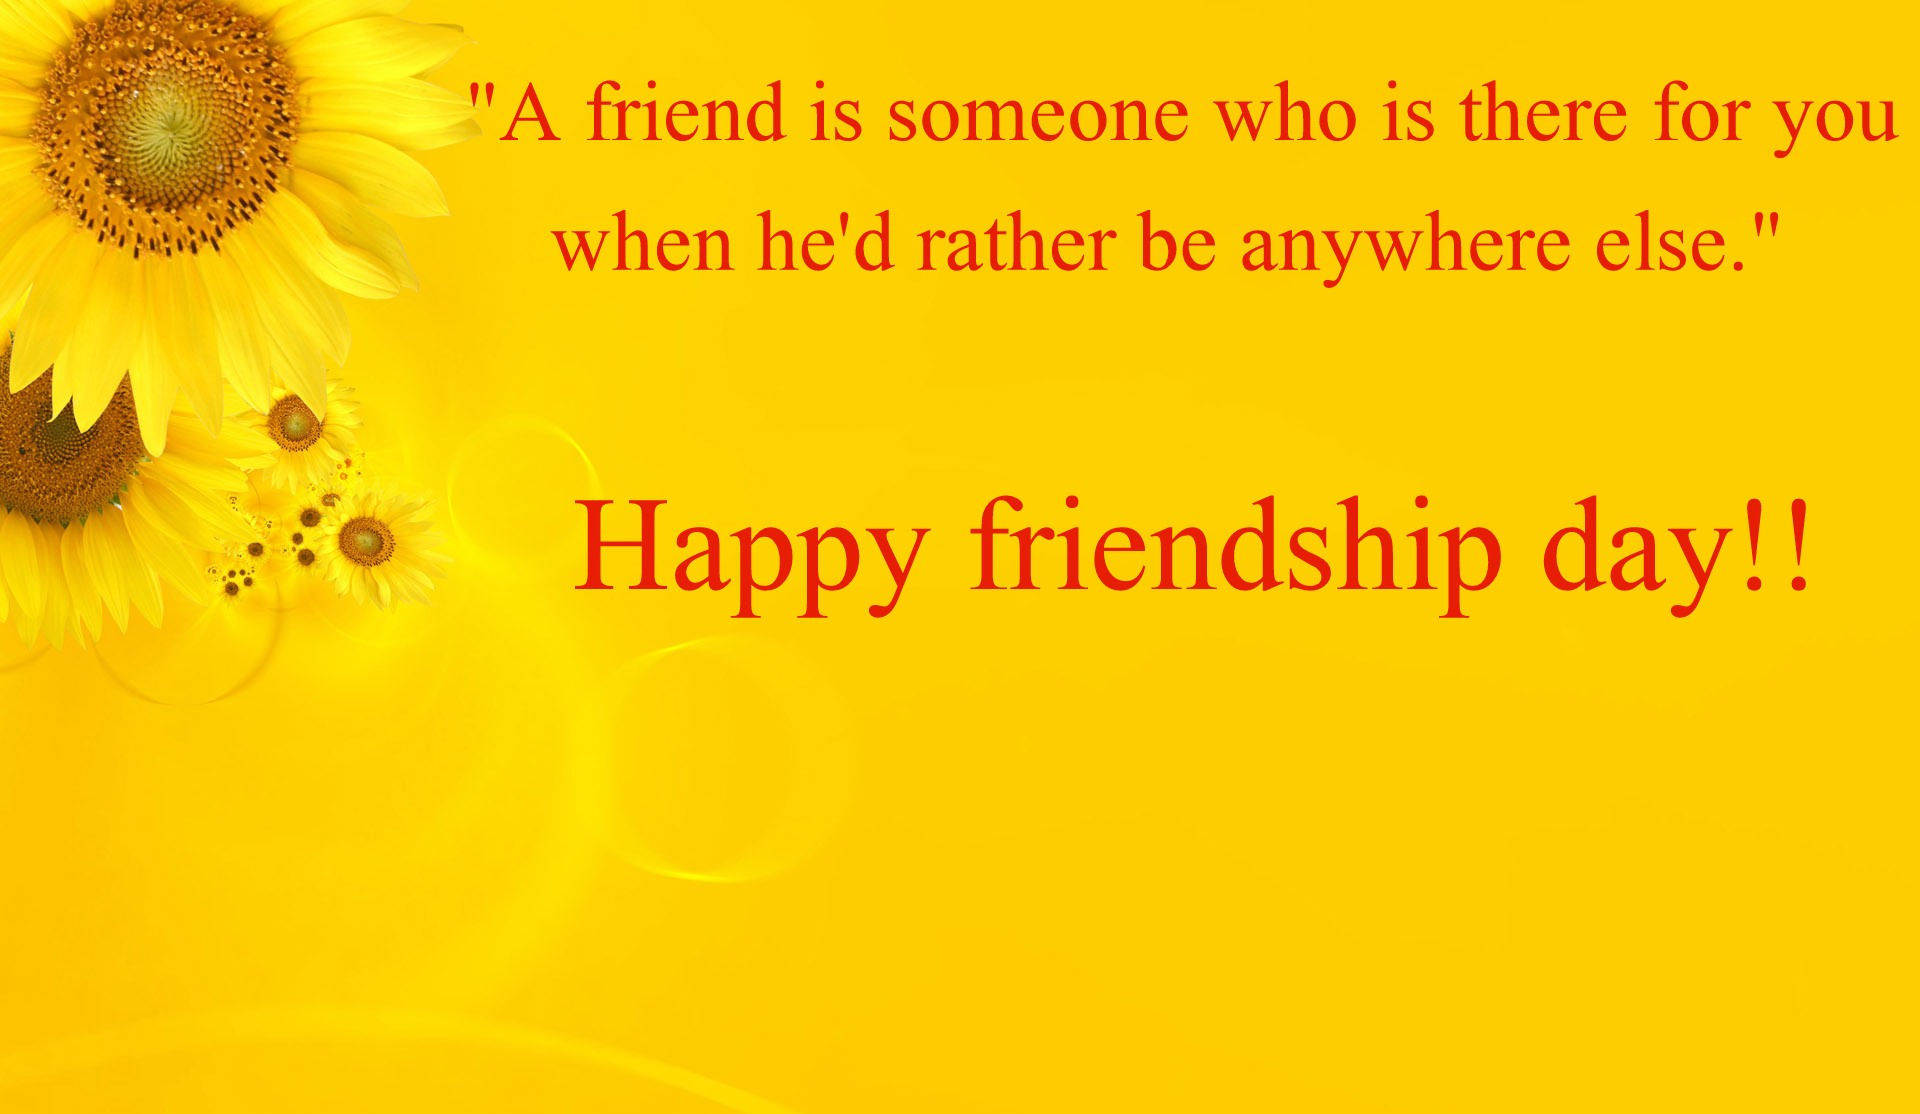 Friendship Day Message and Inspirational Quote